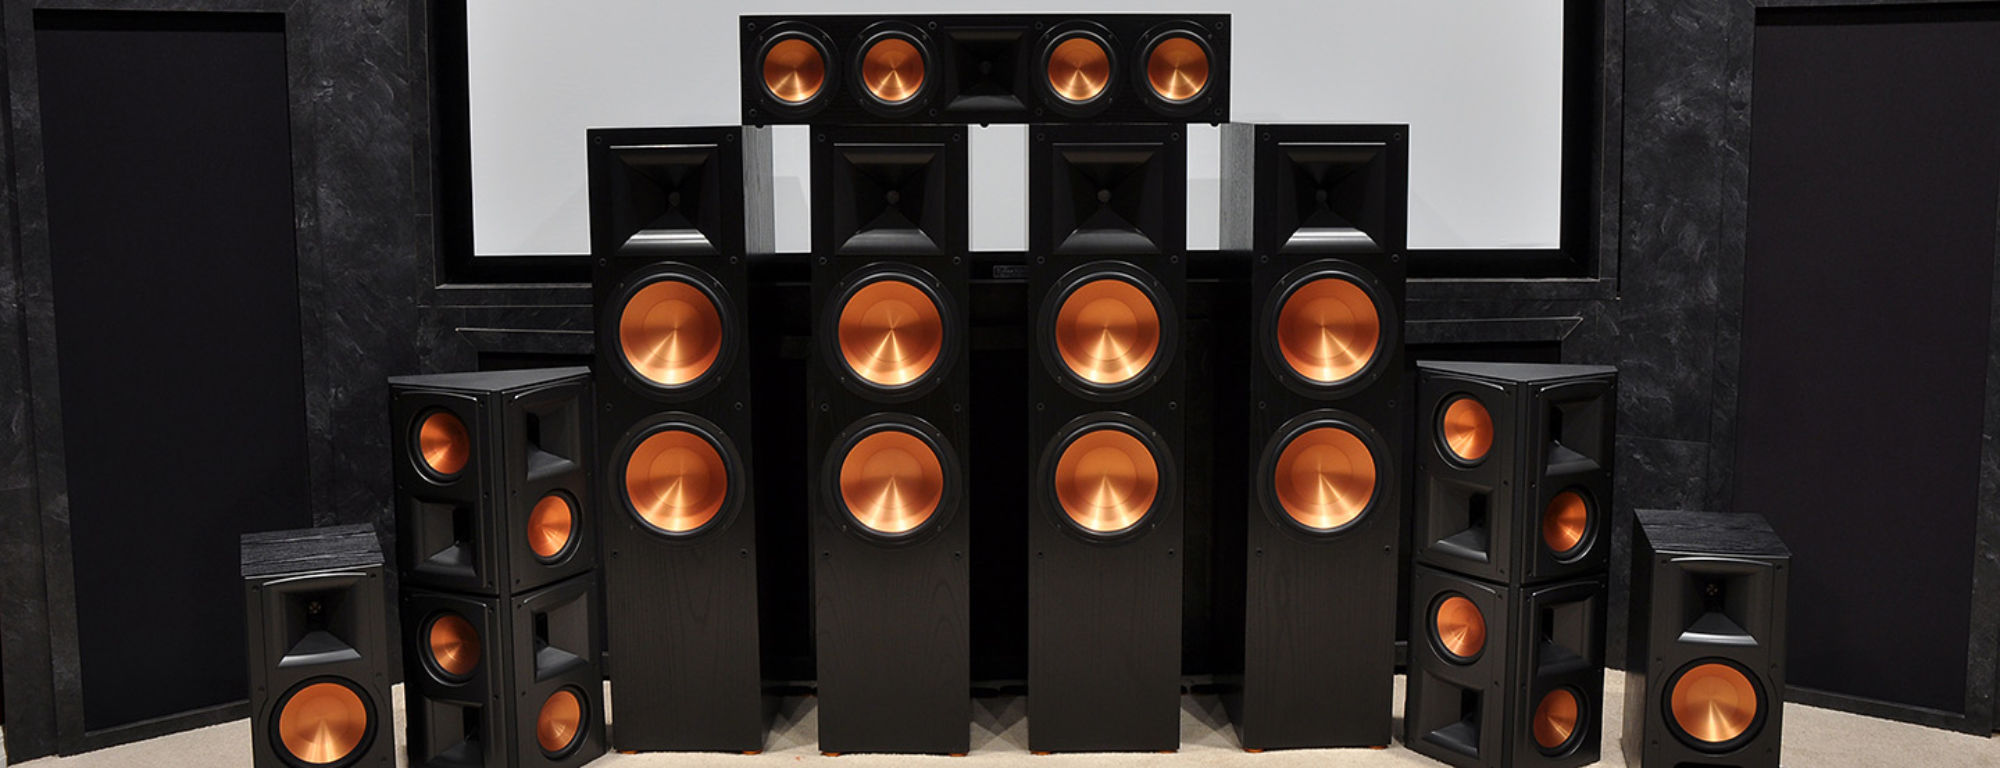 Klipsch surround sound system